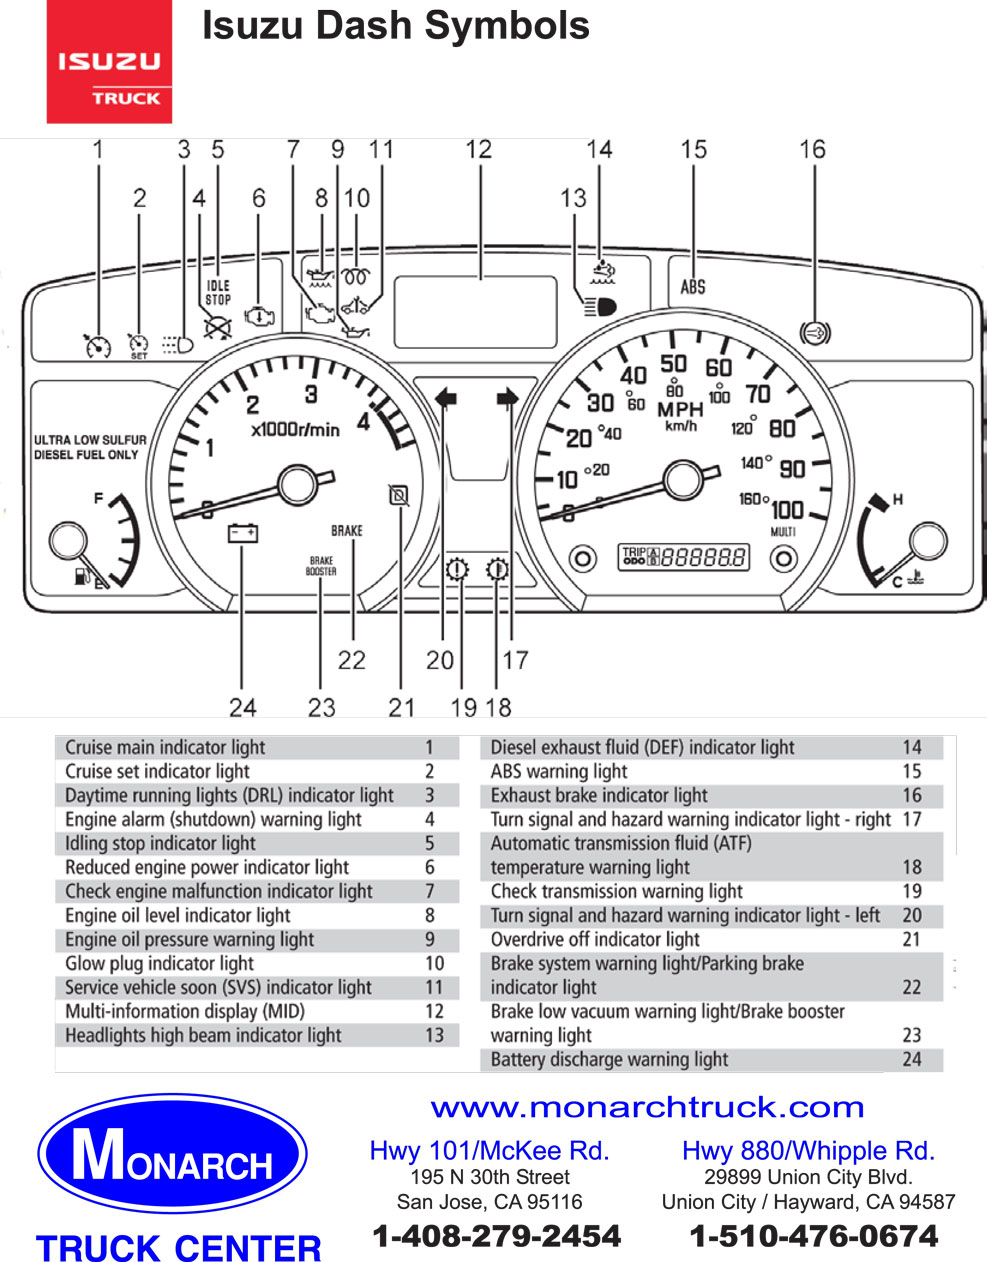 Isuzu Dash Symbols on 1989 Chevy Van Wiring Diagram